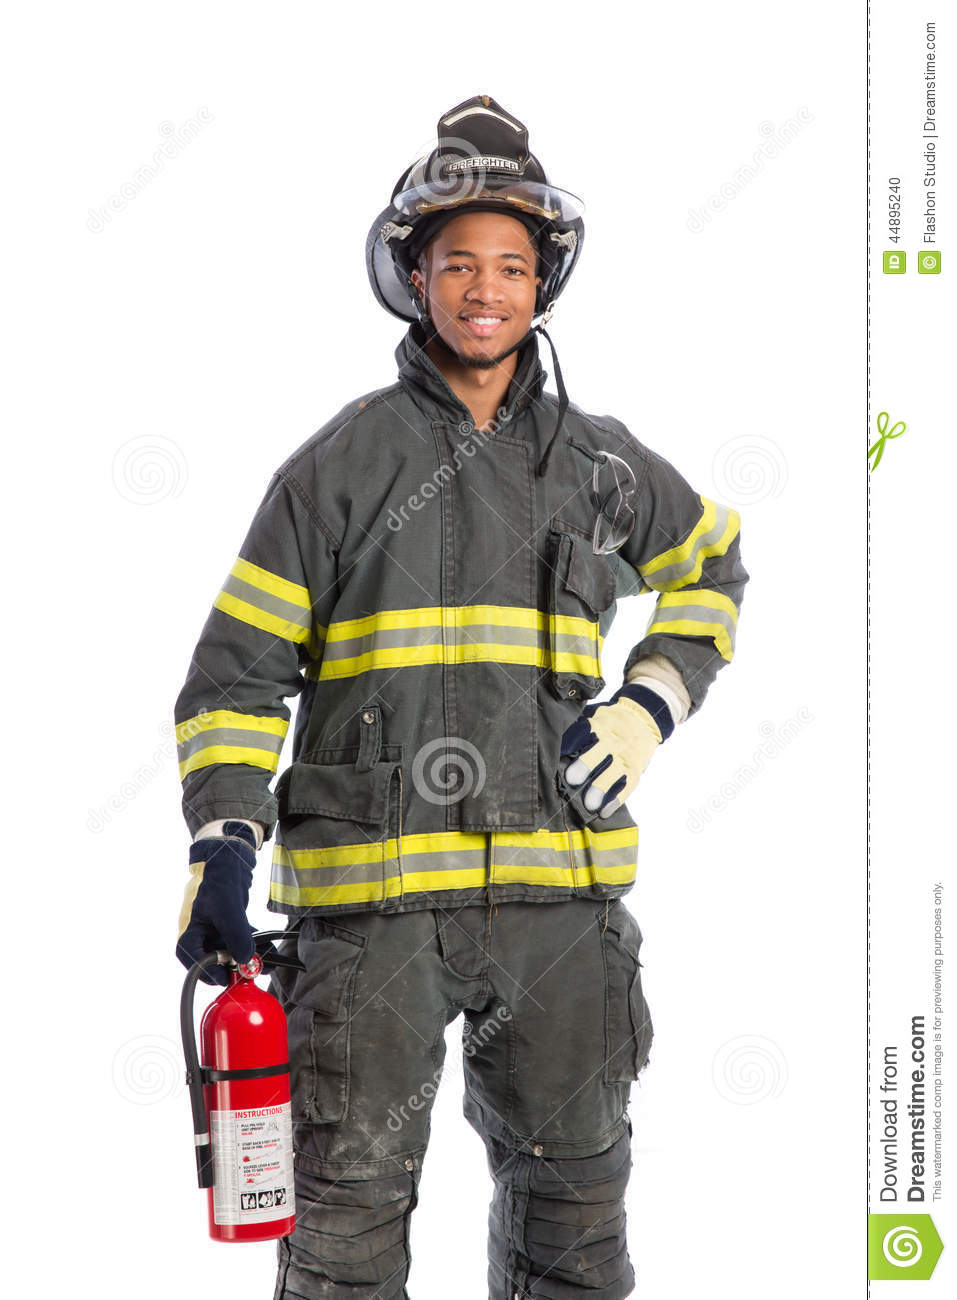 ... In Uniform Holding Fire Extinguisher Stock Photo - Image: 44895240